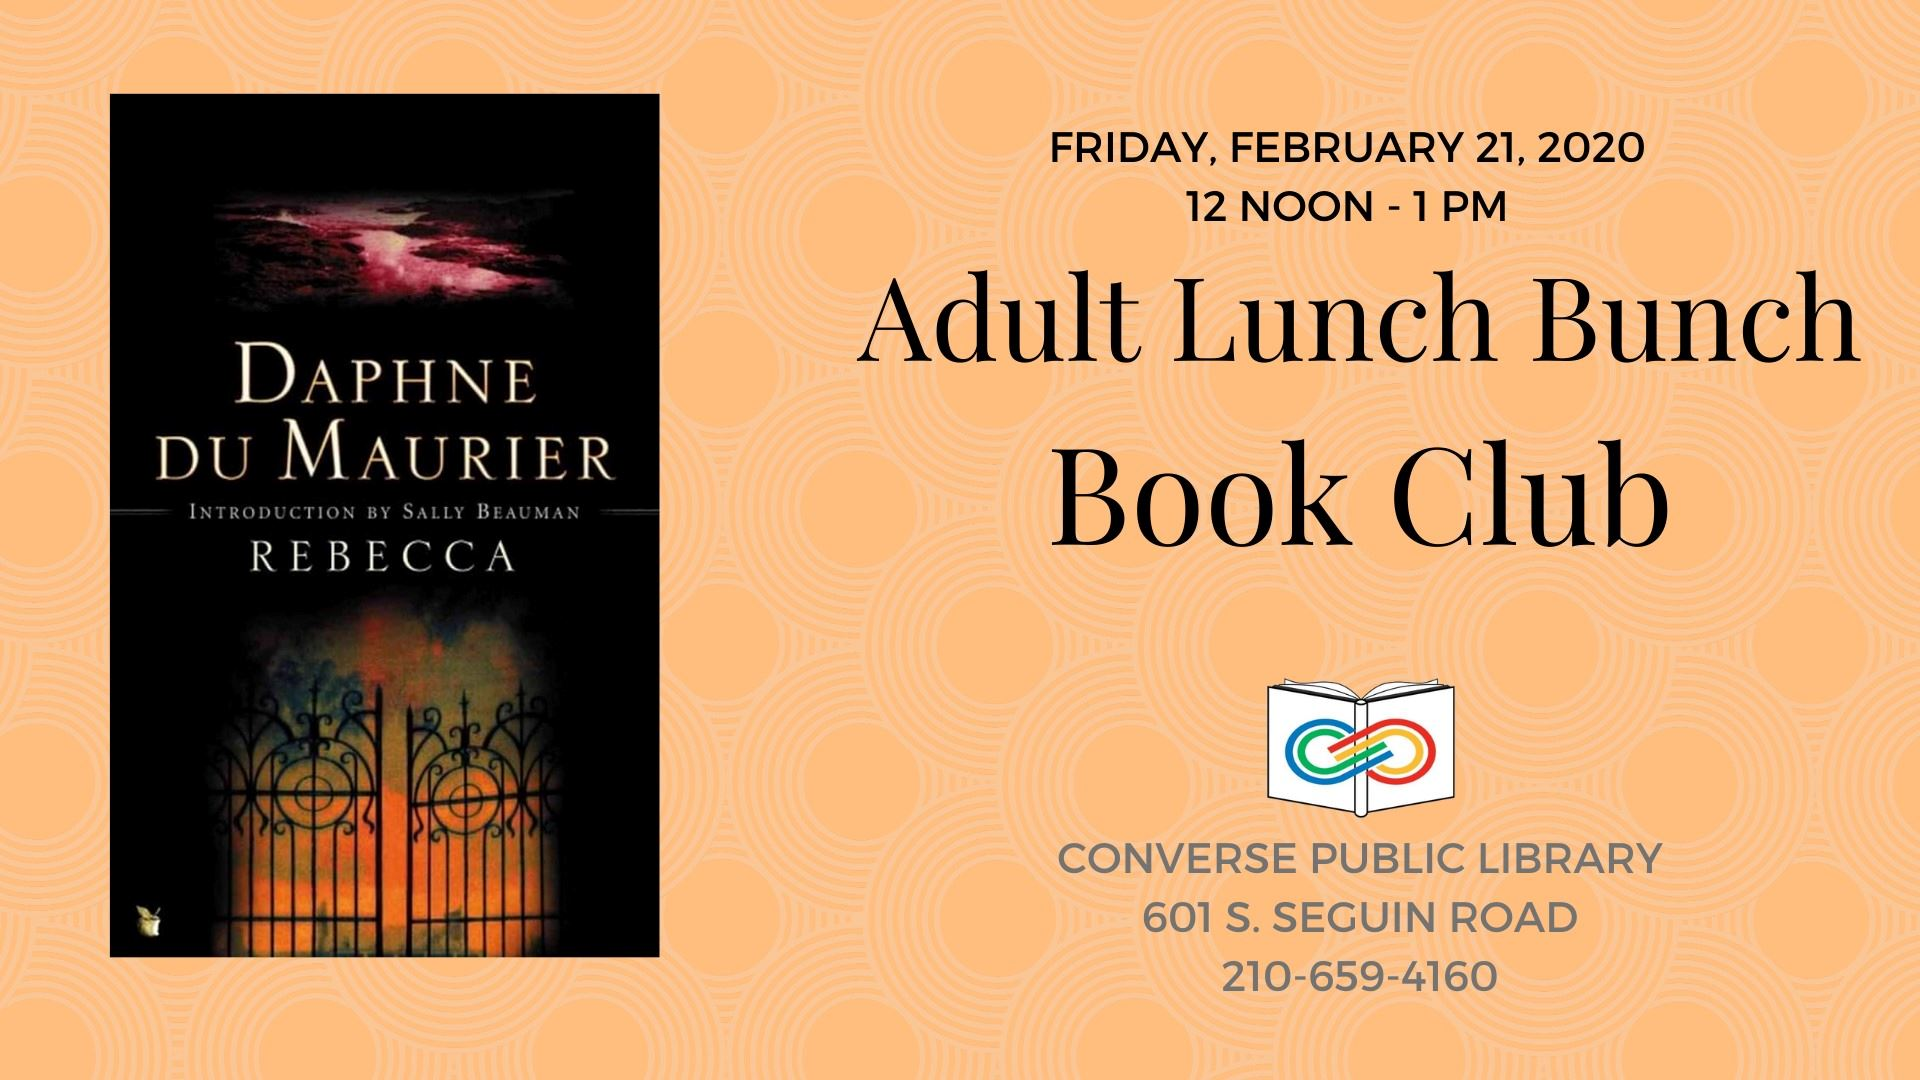 Adult Lunch Bunch Book Club